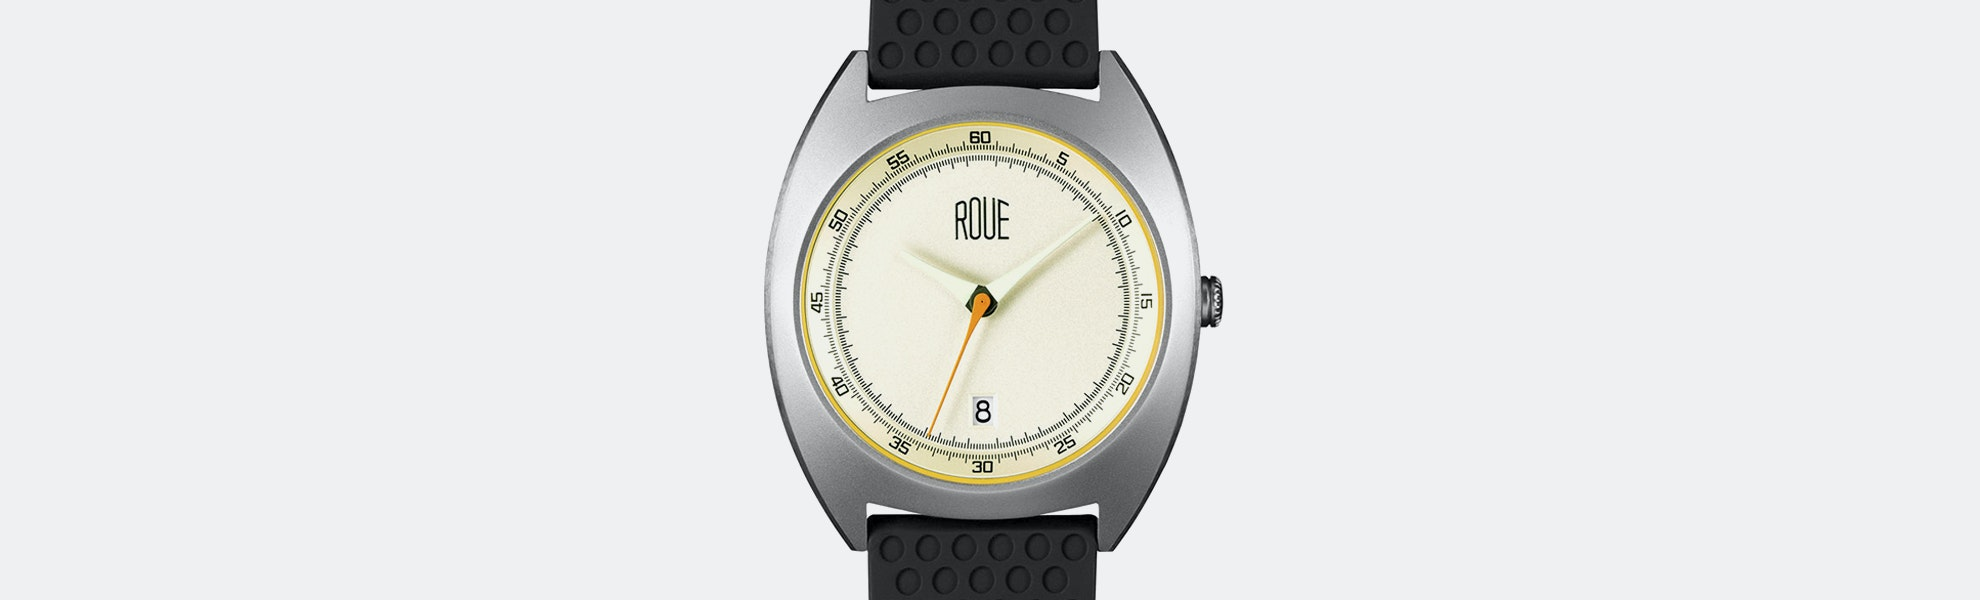 Roue Watches CAL